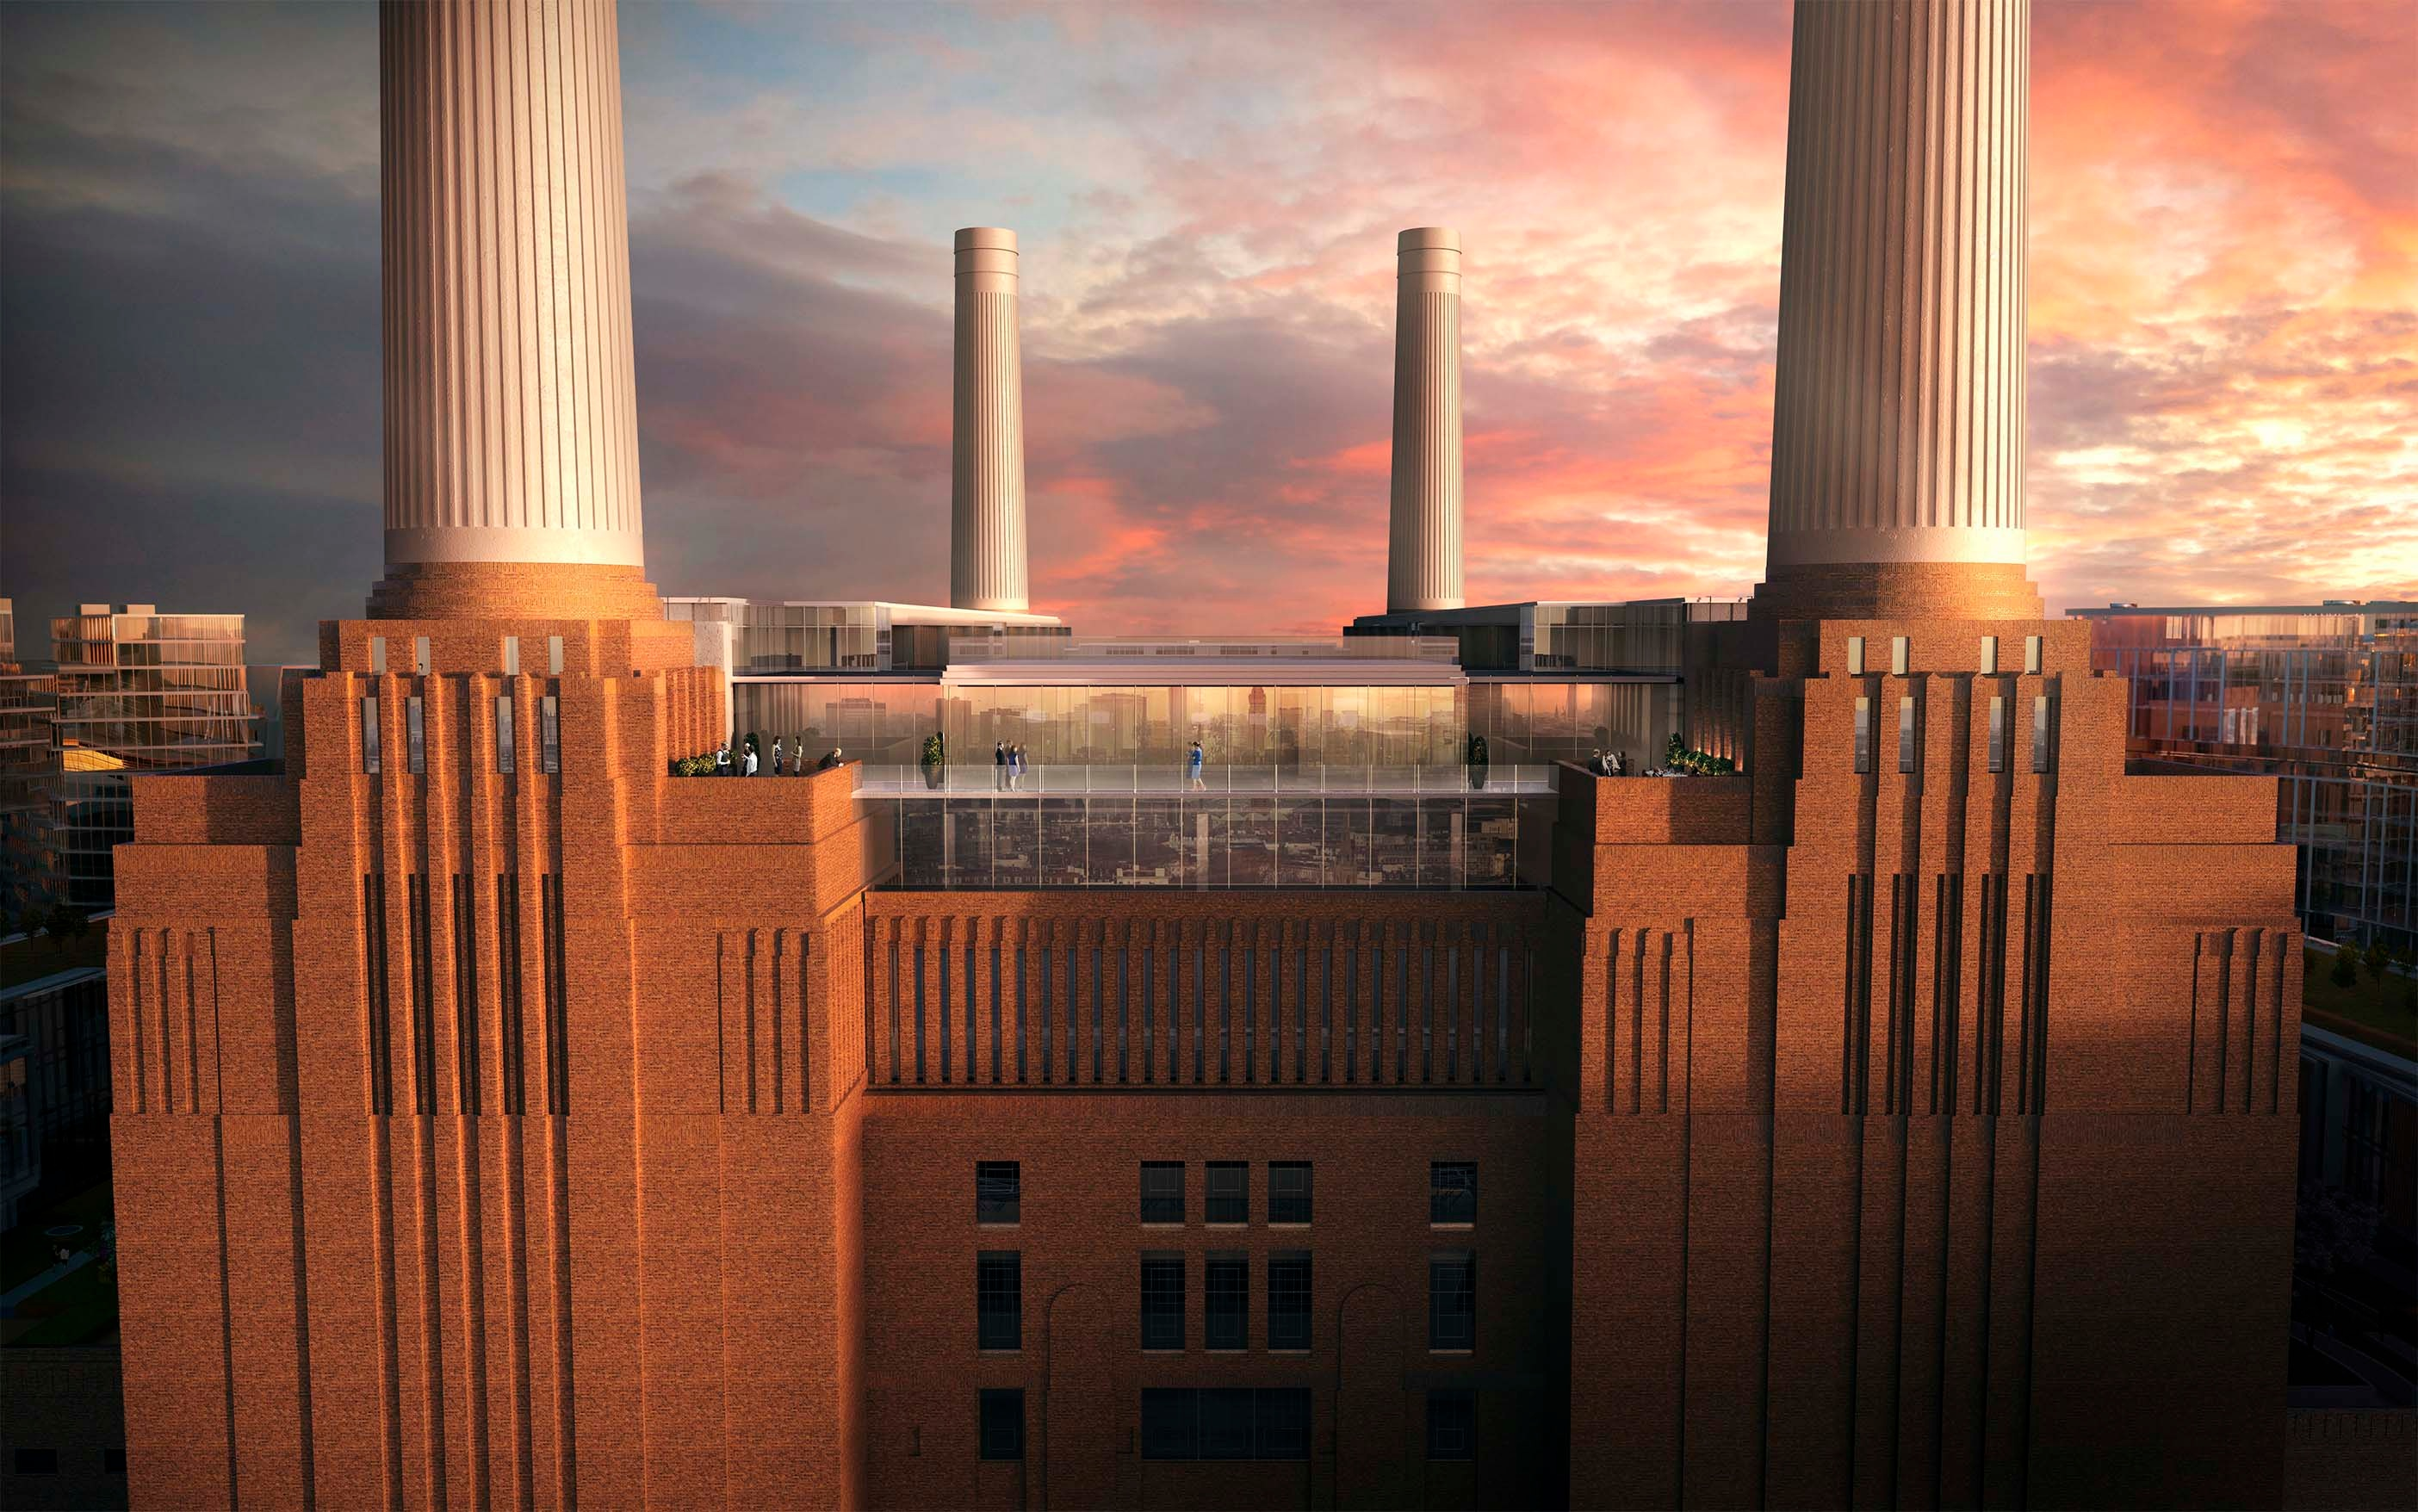 What distinguishes Battersea Power Station from other developments in London